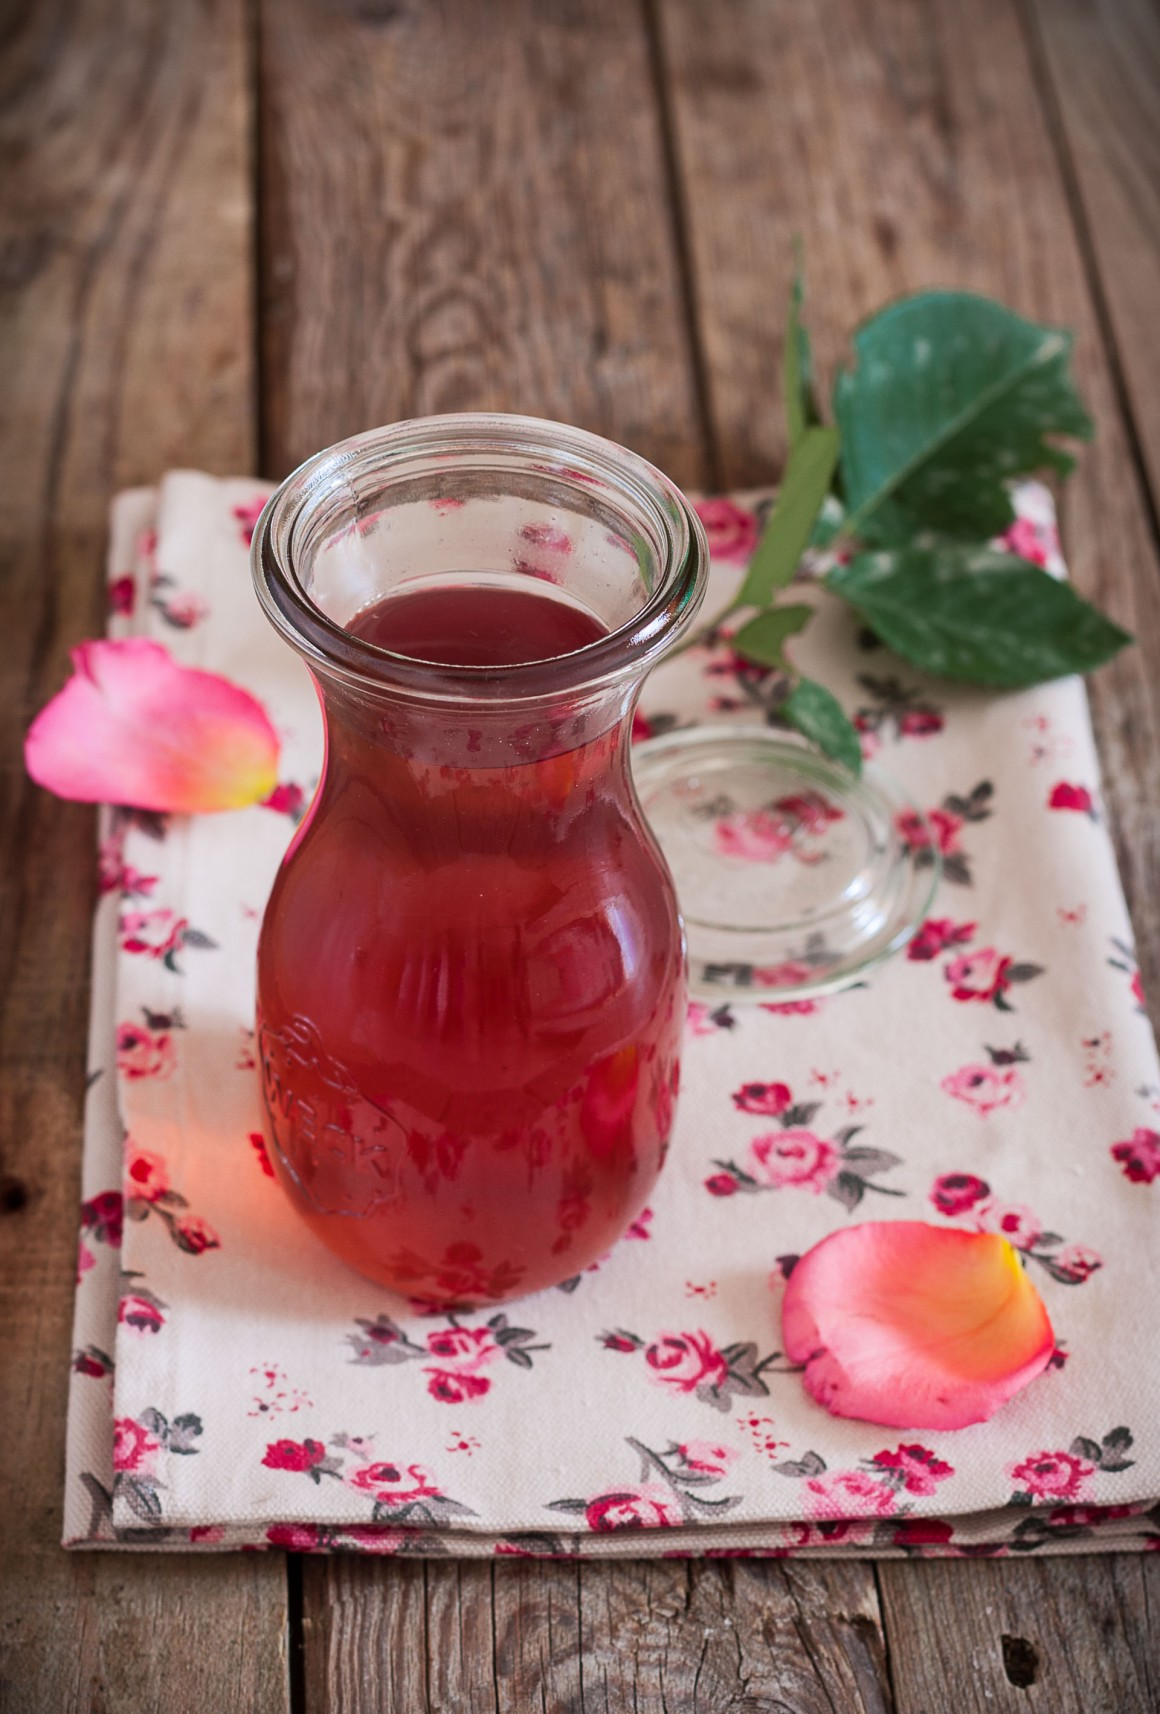 sciroppo di rose homemade (5)